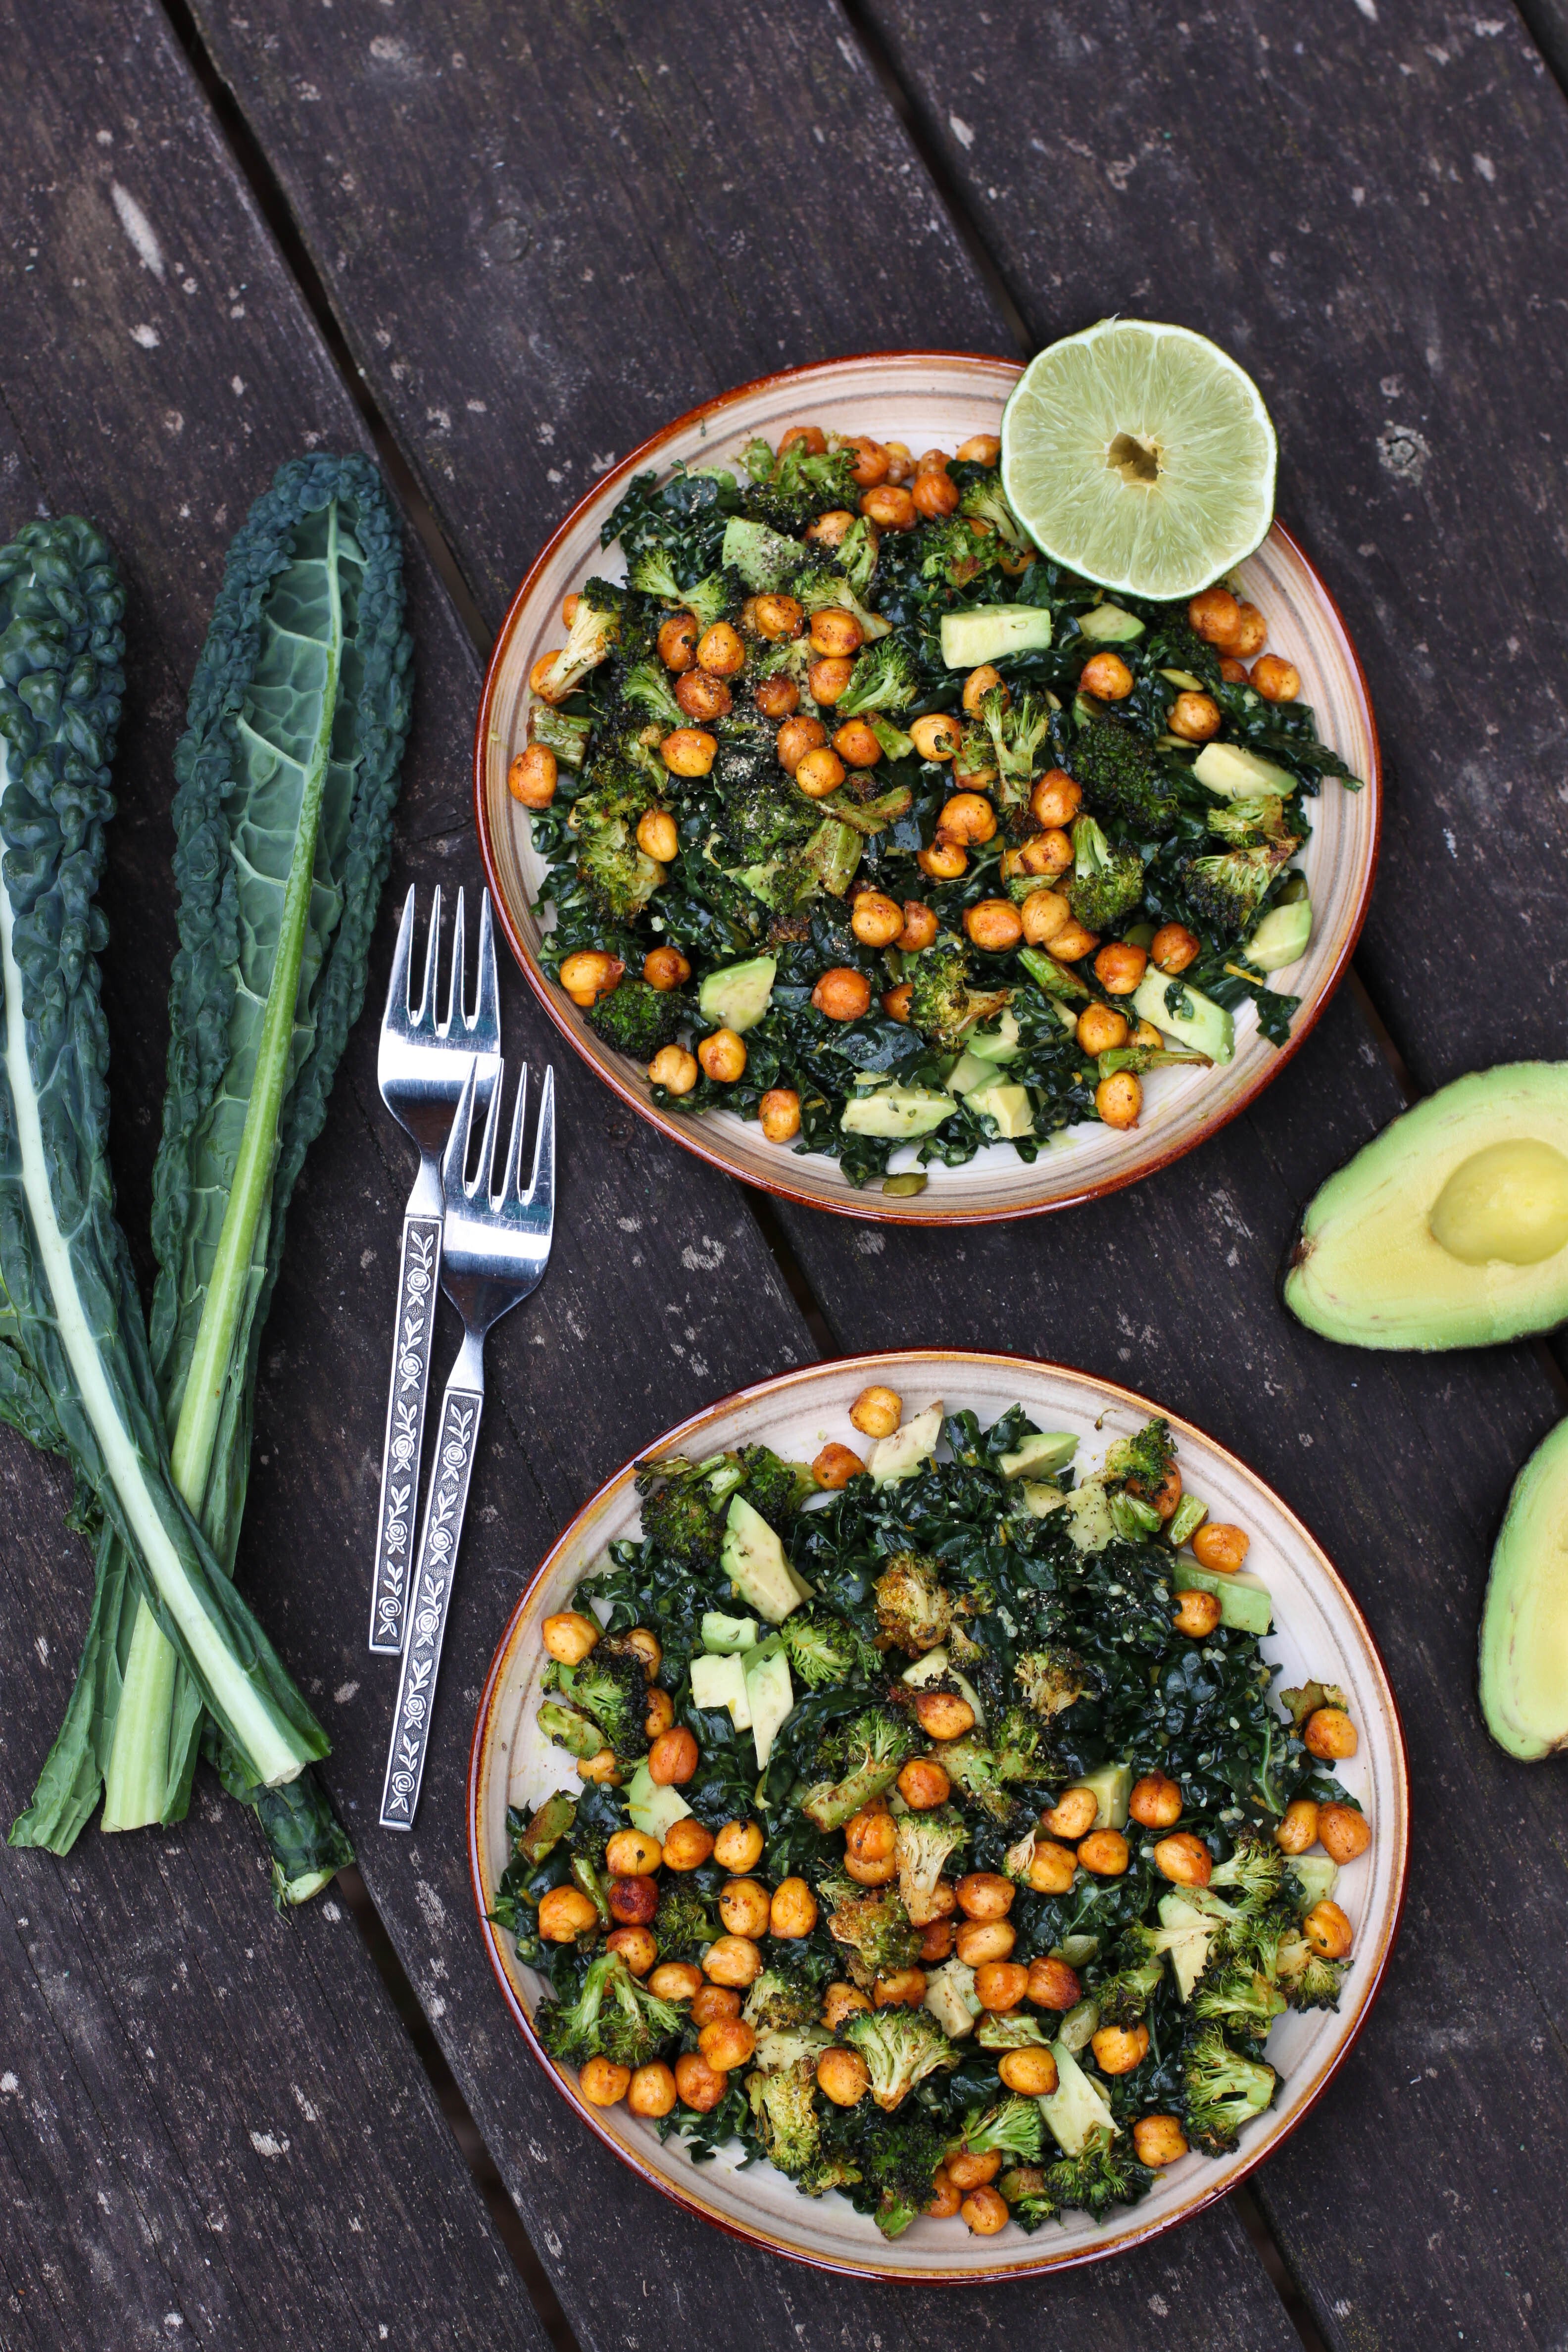 Kale & Avocado Salad with Roasted Chickpeas & Broccoli